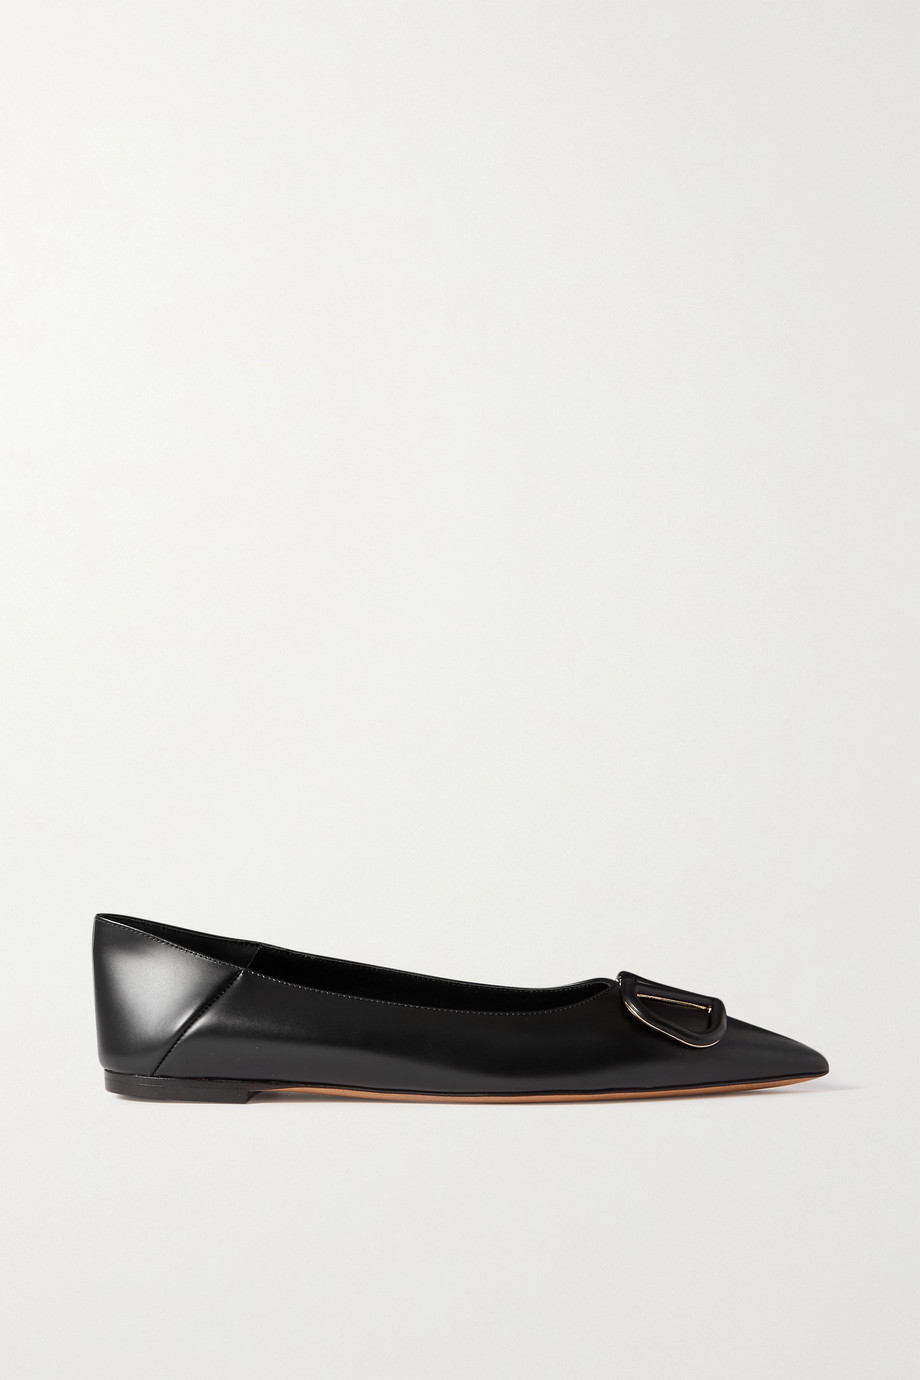 VALENTINO Go Logo leather collapsible-heel point-toe flats